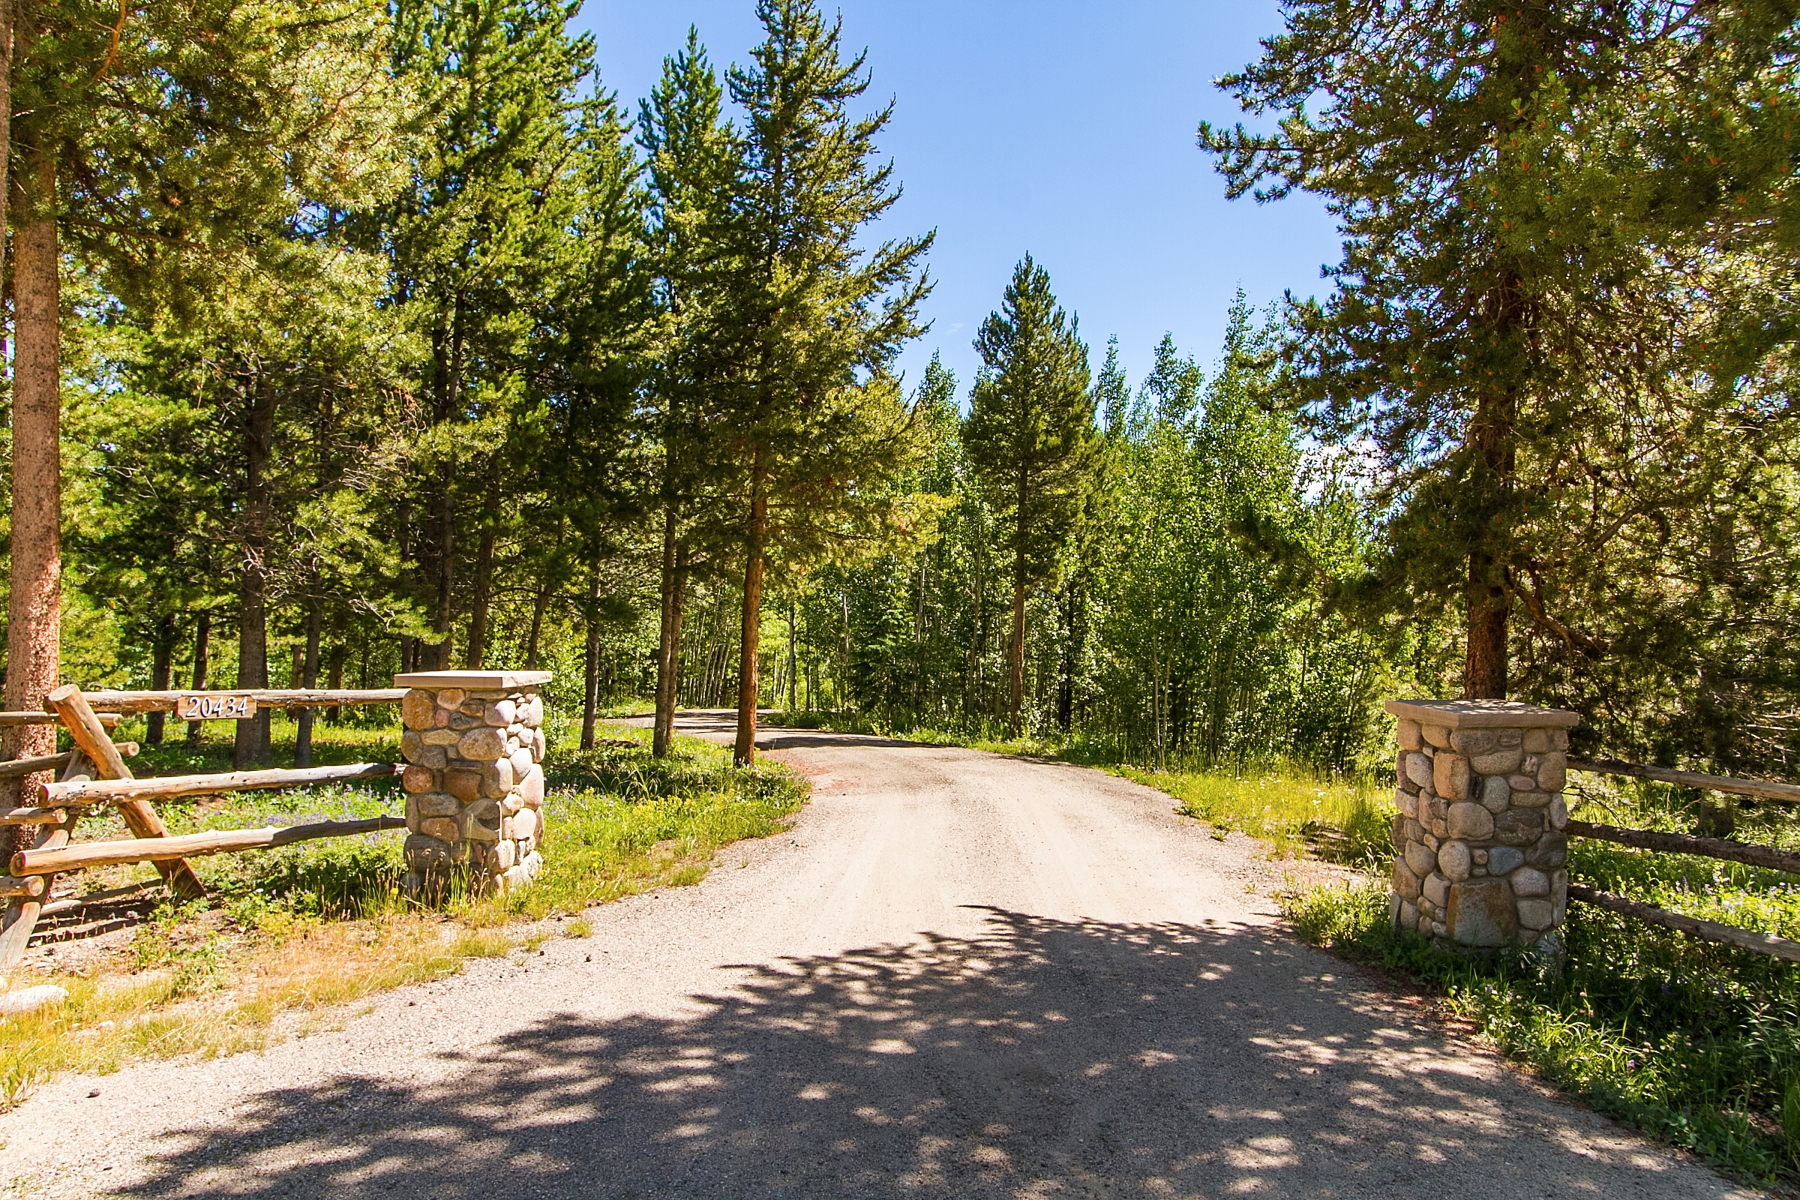 Single Family Home for Sale at Custom home nestled on 37 acres surrounded by lush forest 20434 County Road 50 Fraser, Colorado, 80442 United States